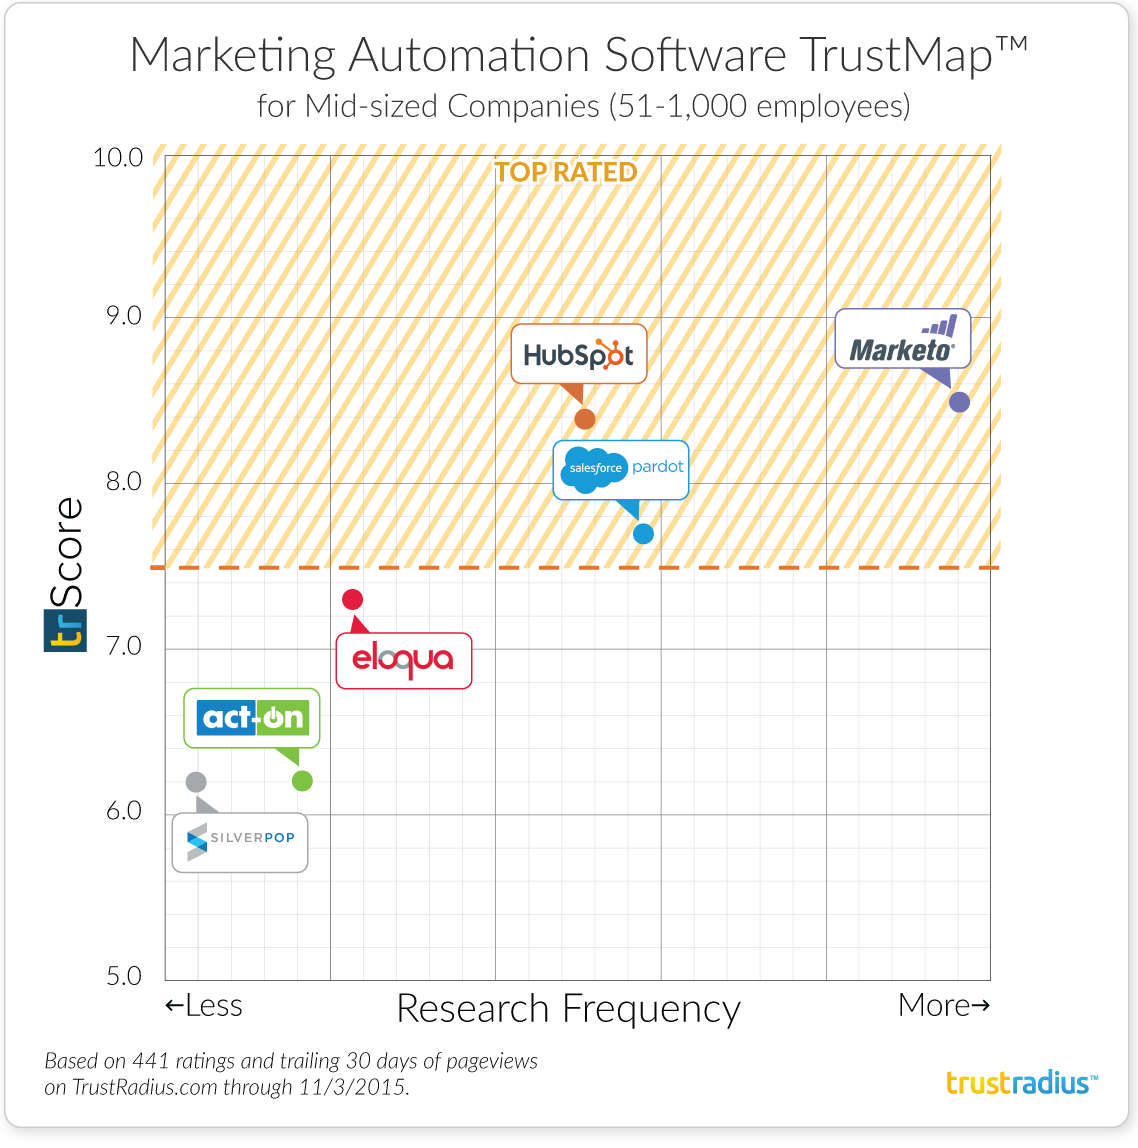 Mid-Size Companies Marketing Automation Software TrustMap